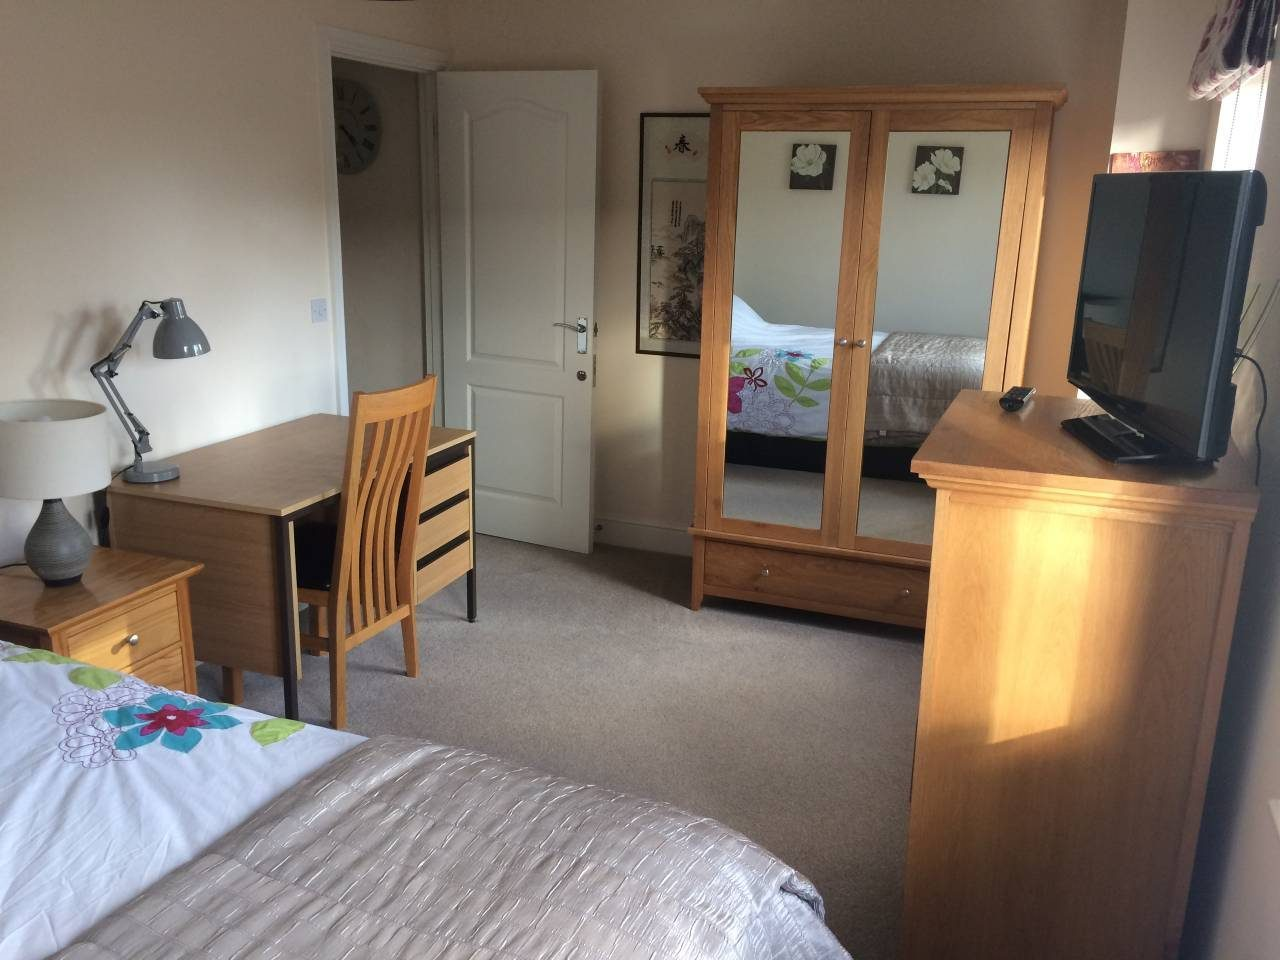 Picture of my guest bedroom that I rent out on Airbnb in Norwich, Norfolk